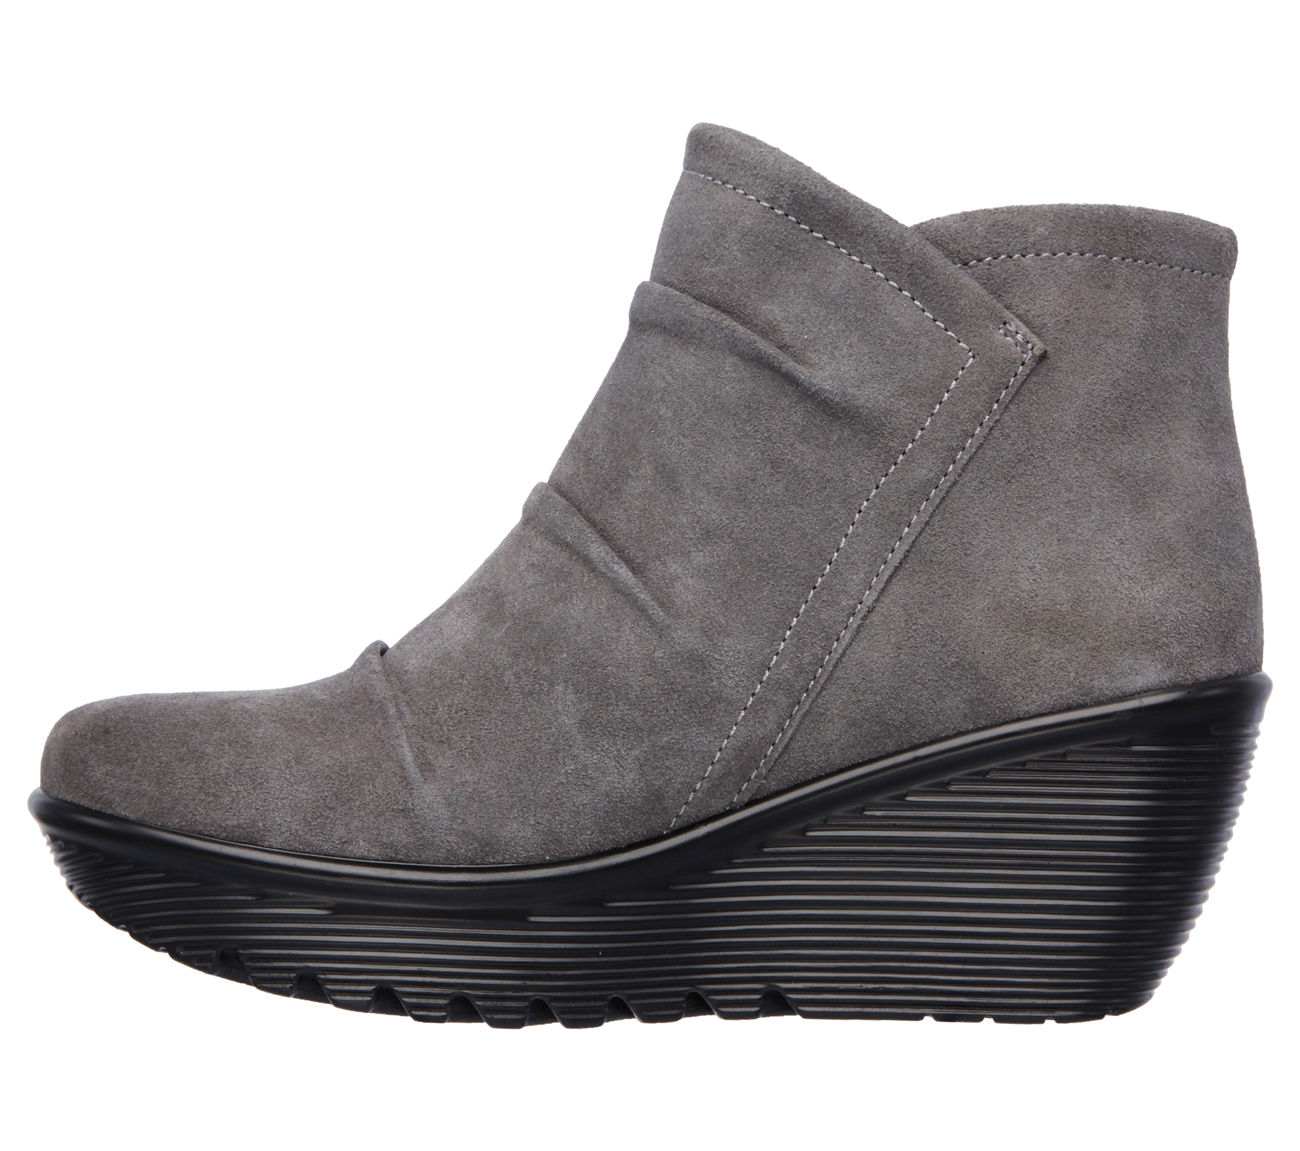 buy skechers wedge boots gt off71 discounted